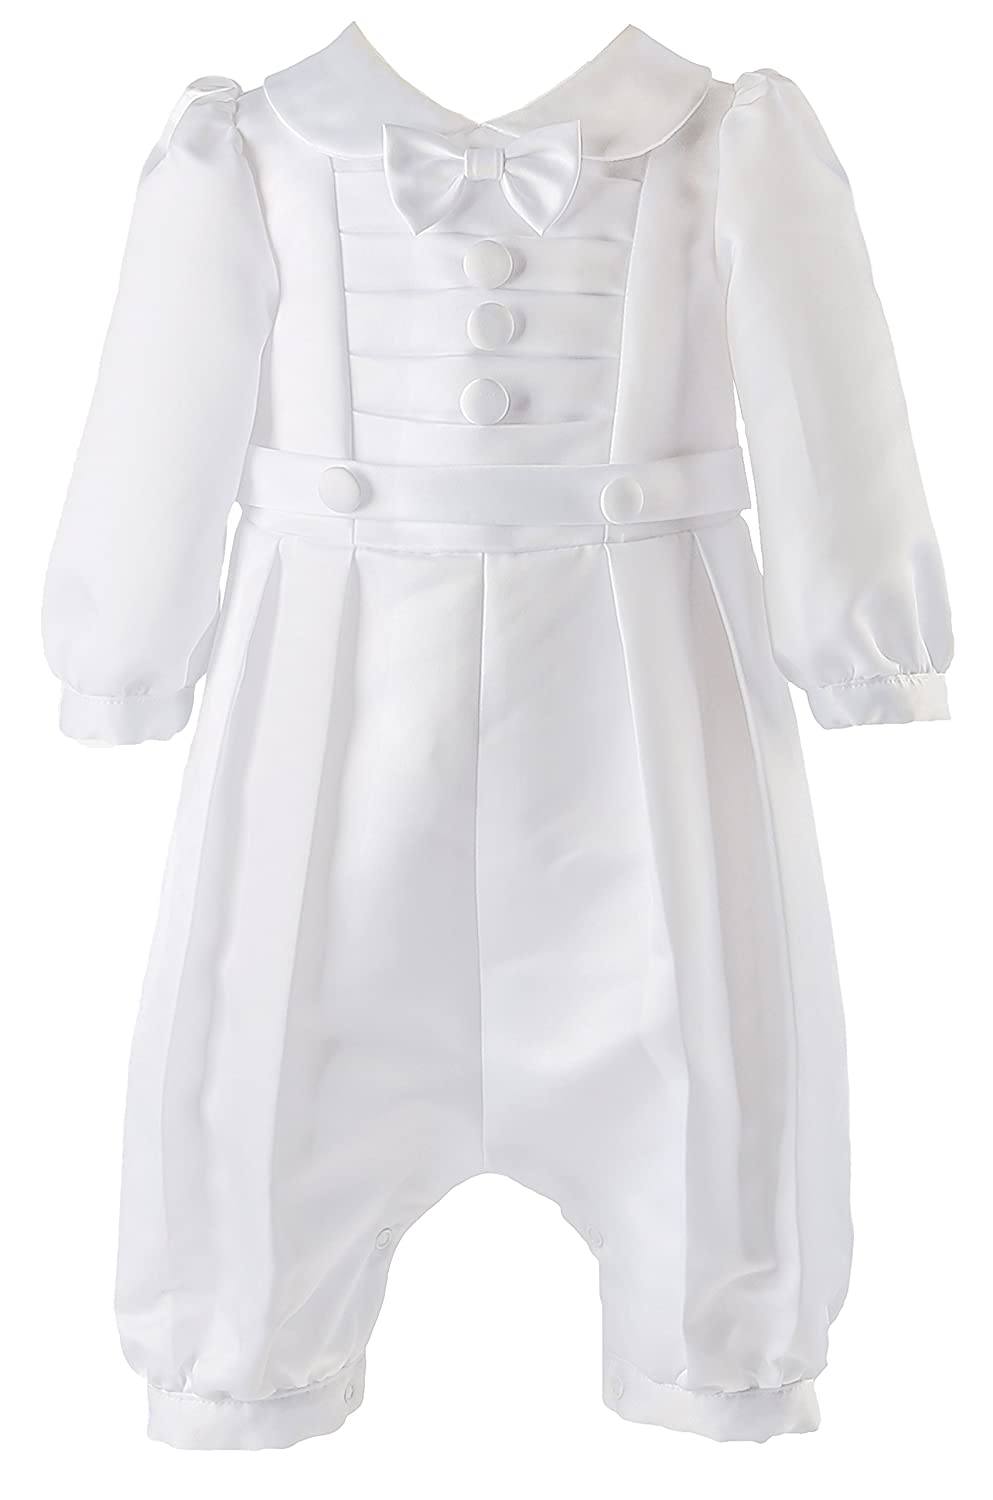 NIMBLE Baby Boys Newborn Christening Baptism White Coverall Outfit Romper, 0-12M